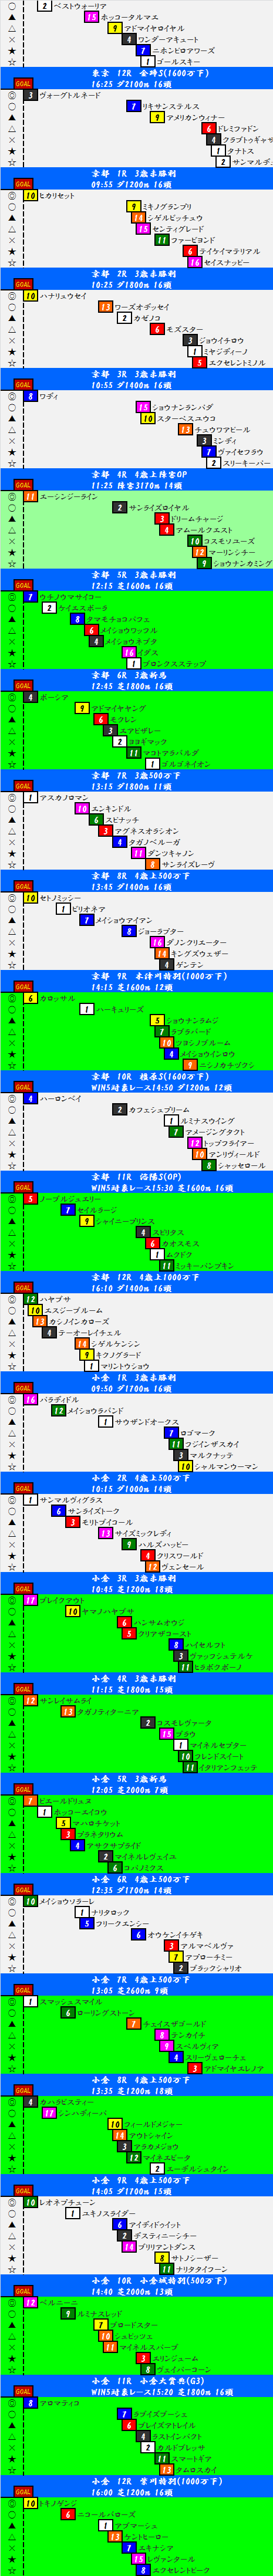 201402232.png